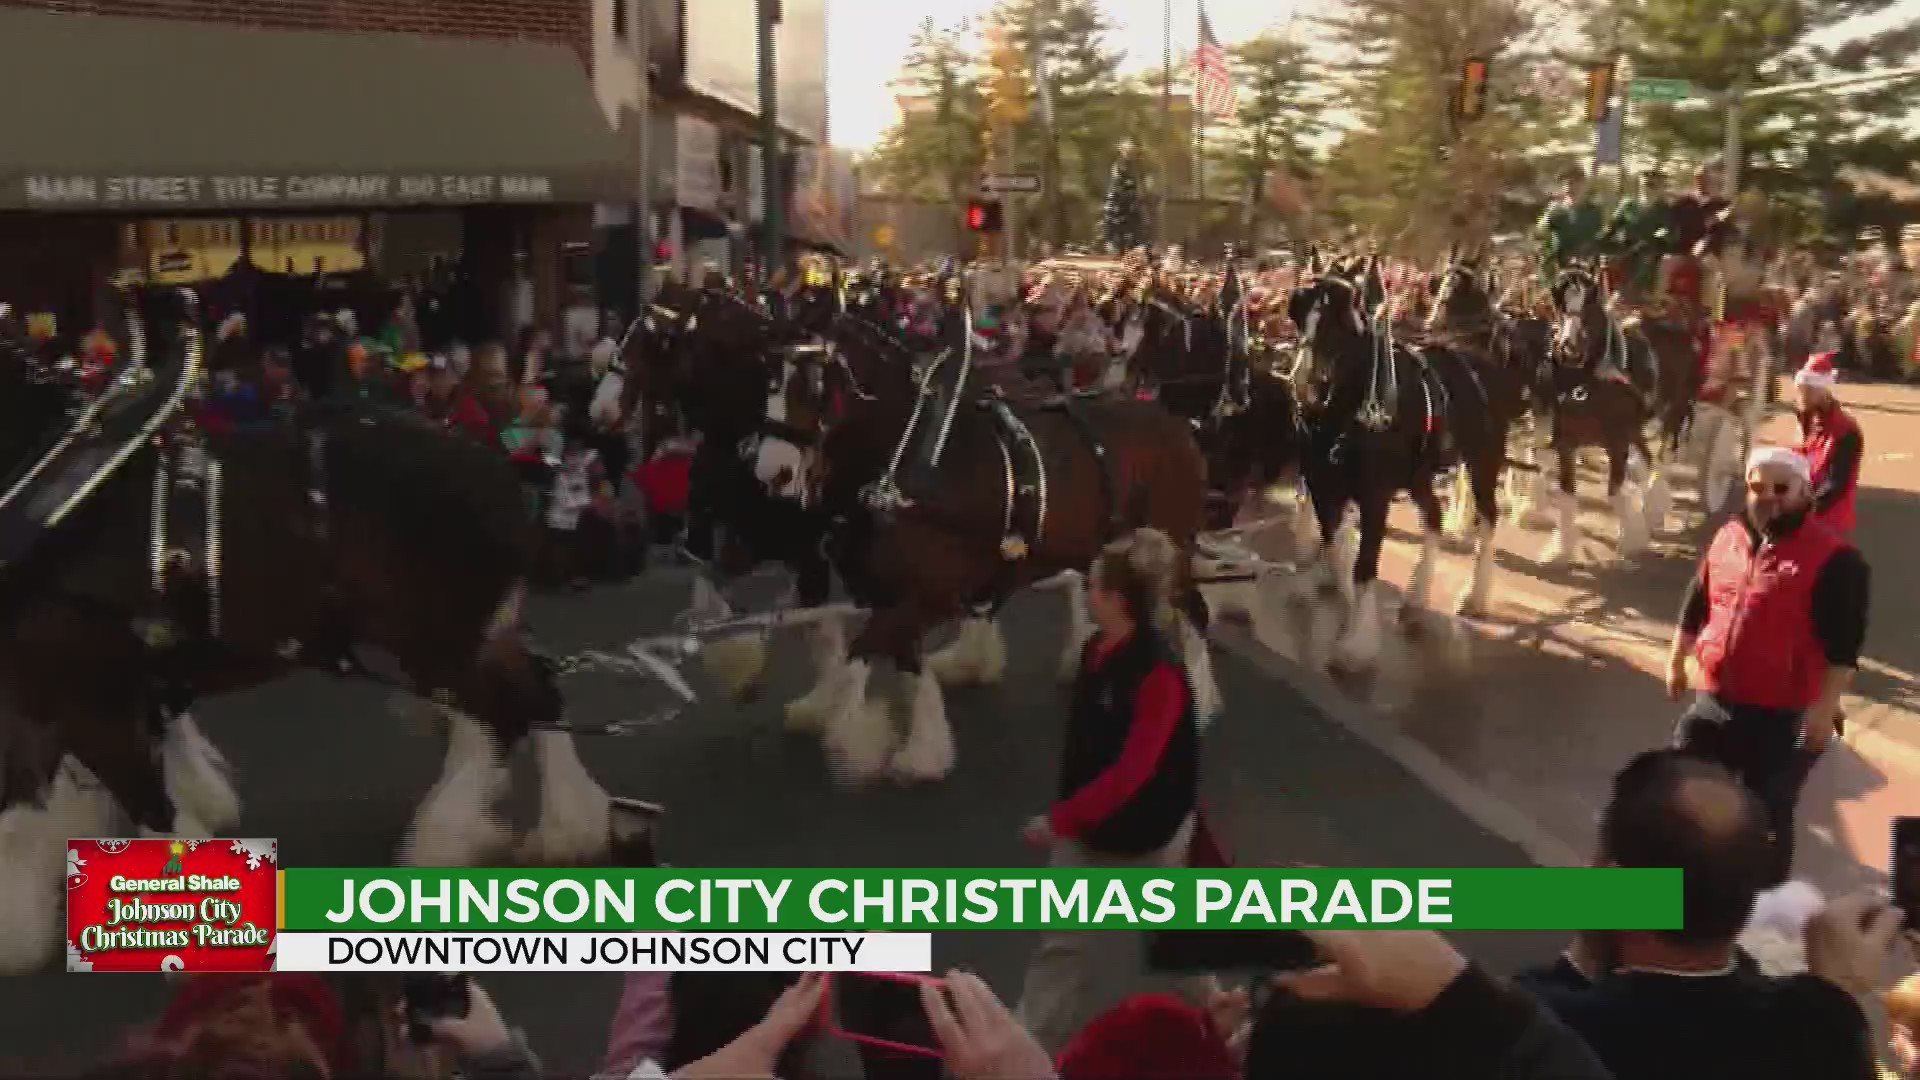 WATCH: Johnson City Christmas Parade & Budweiser Clydesdales